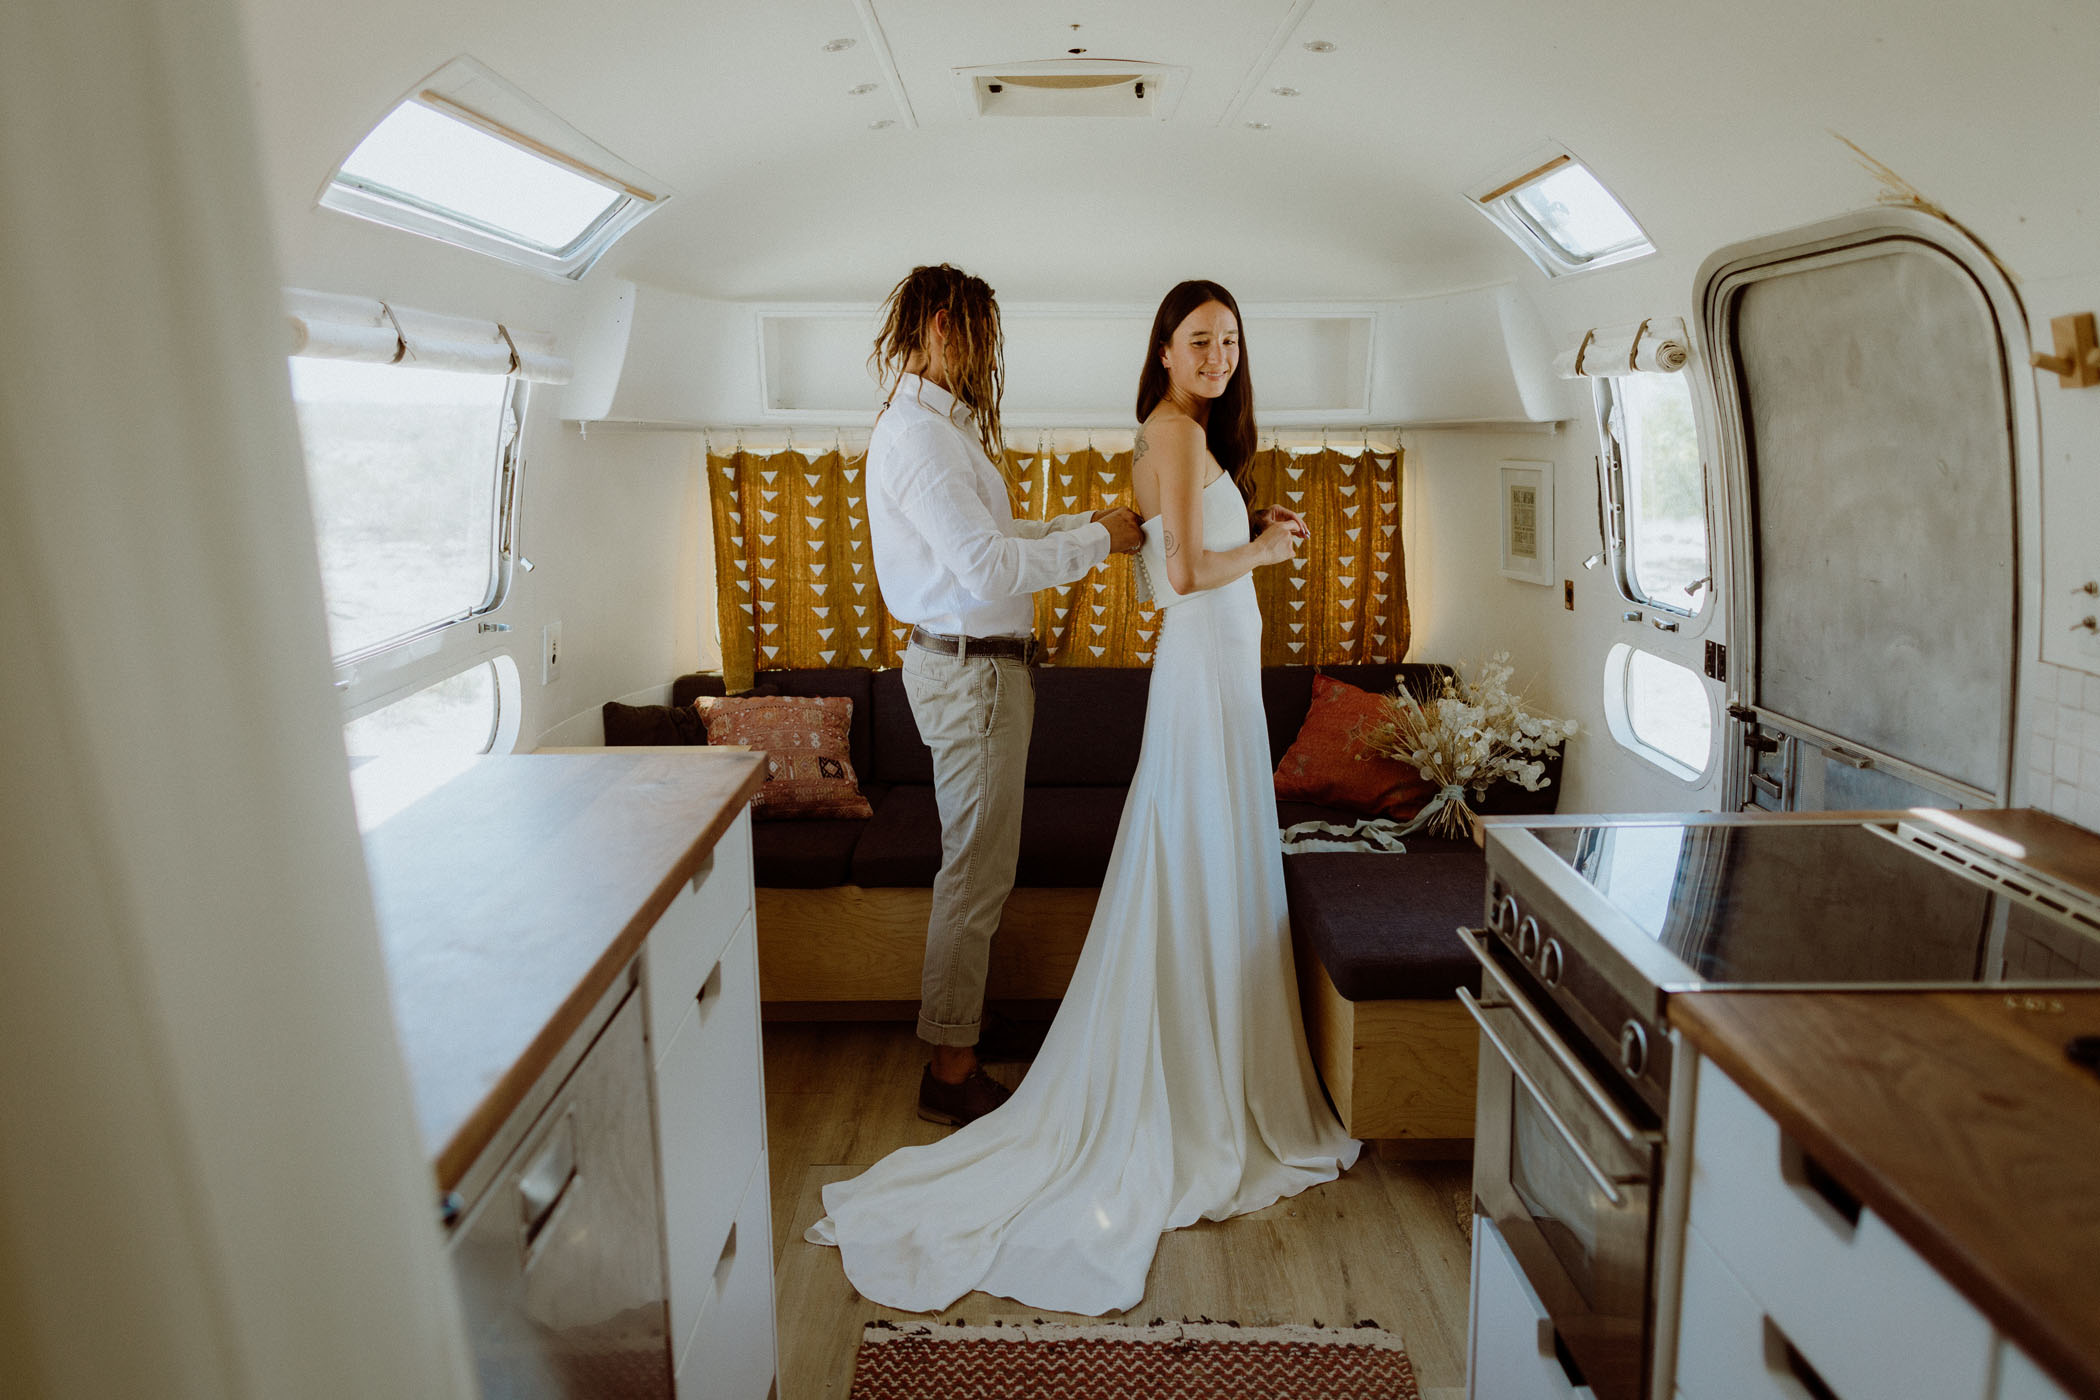 Getting Ready in an Airstream